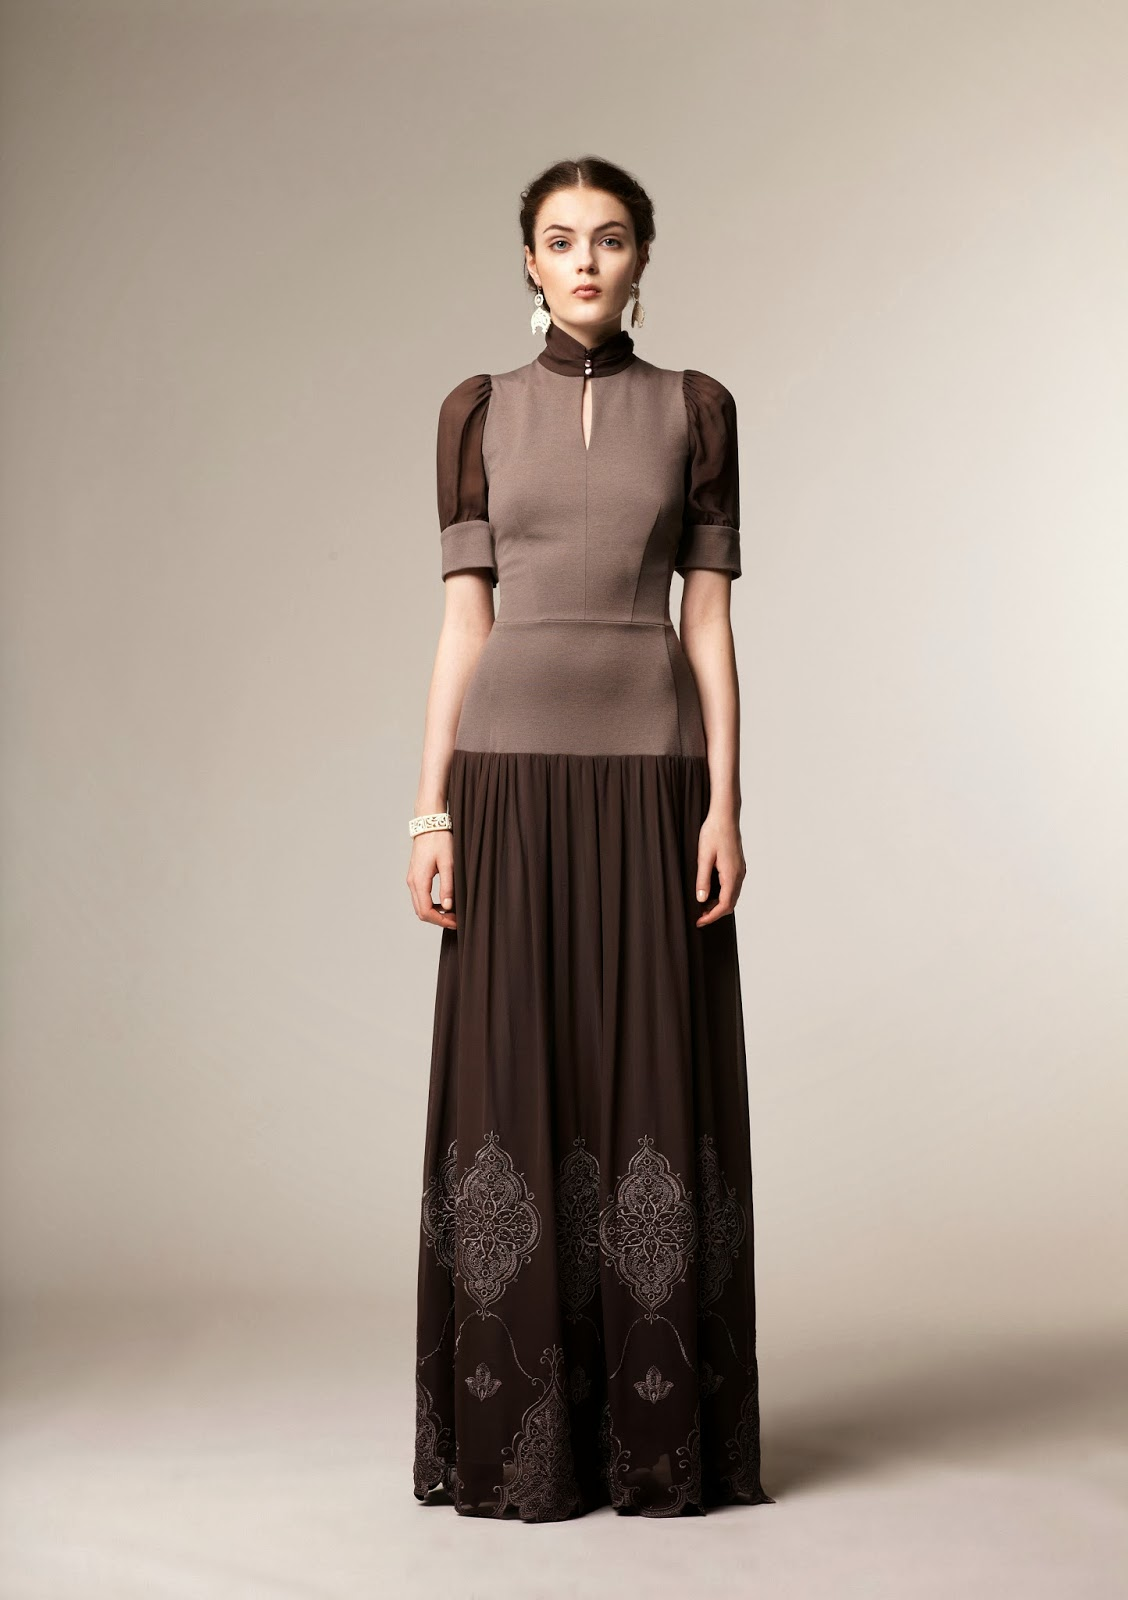 Short sleeve brown modest maxi dress